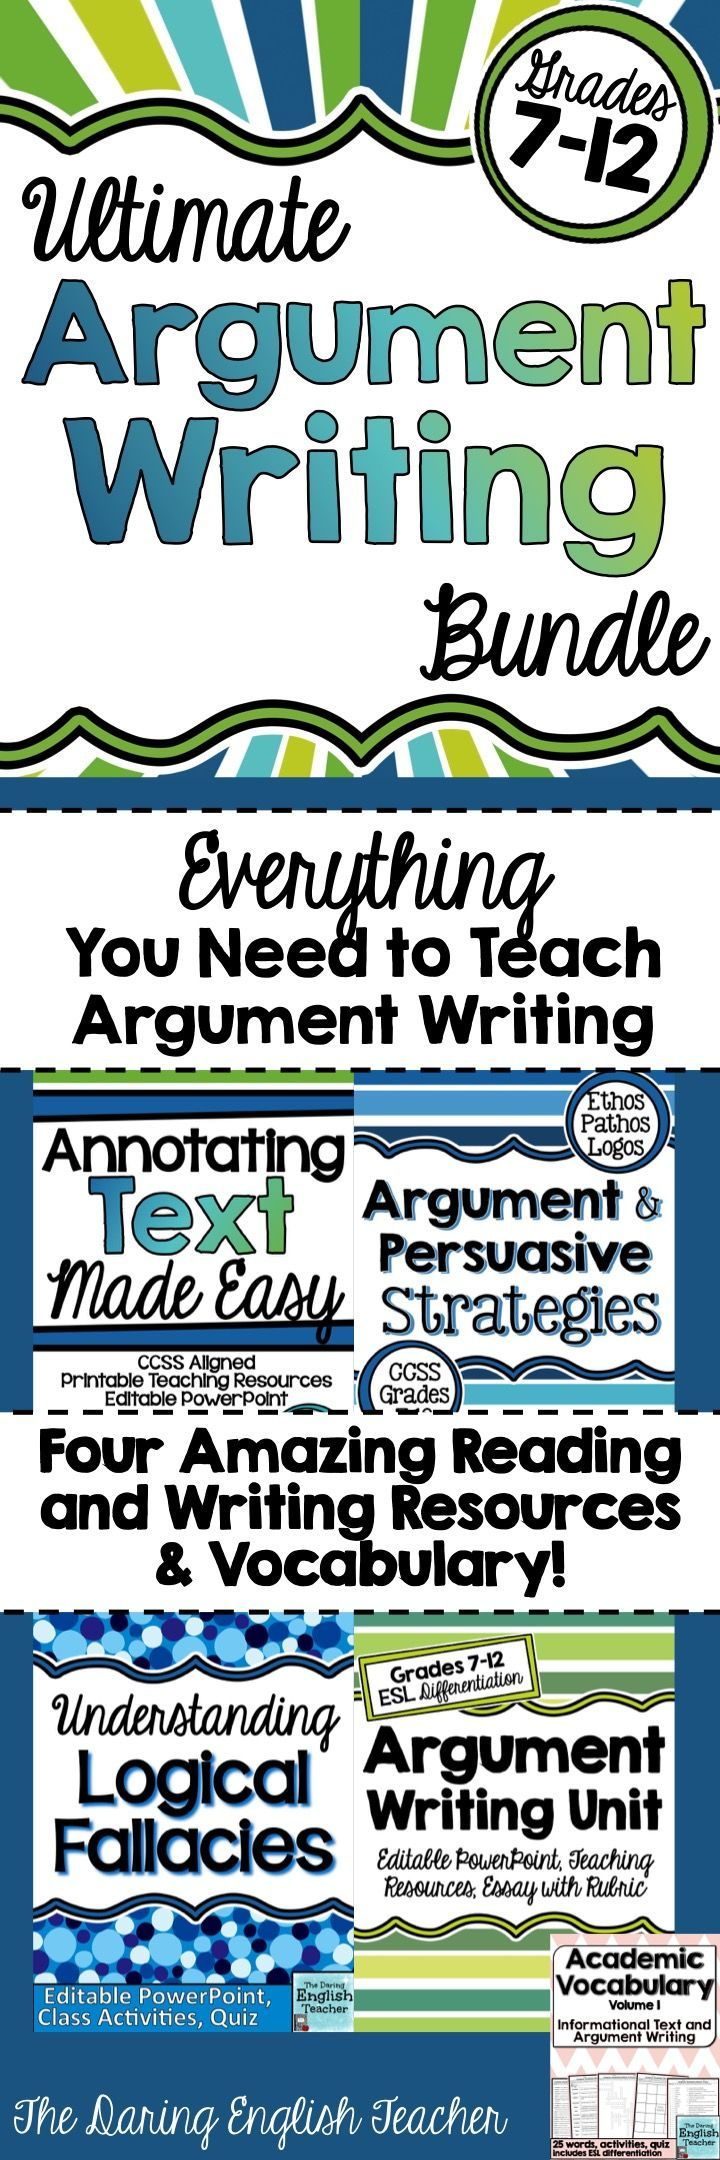 Graphic organizer for argumentative essay writing Pinterest